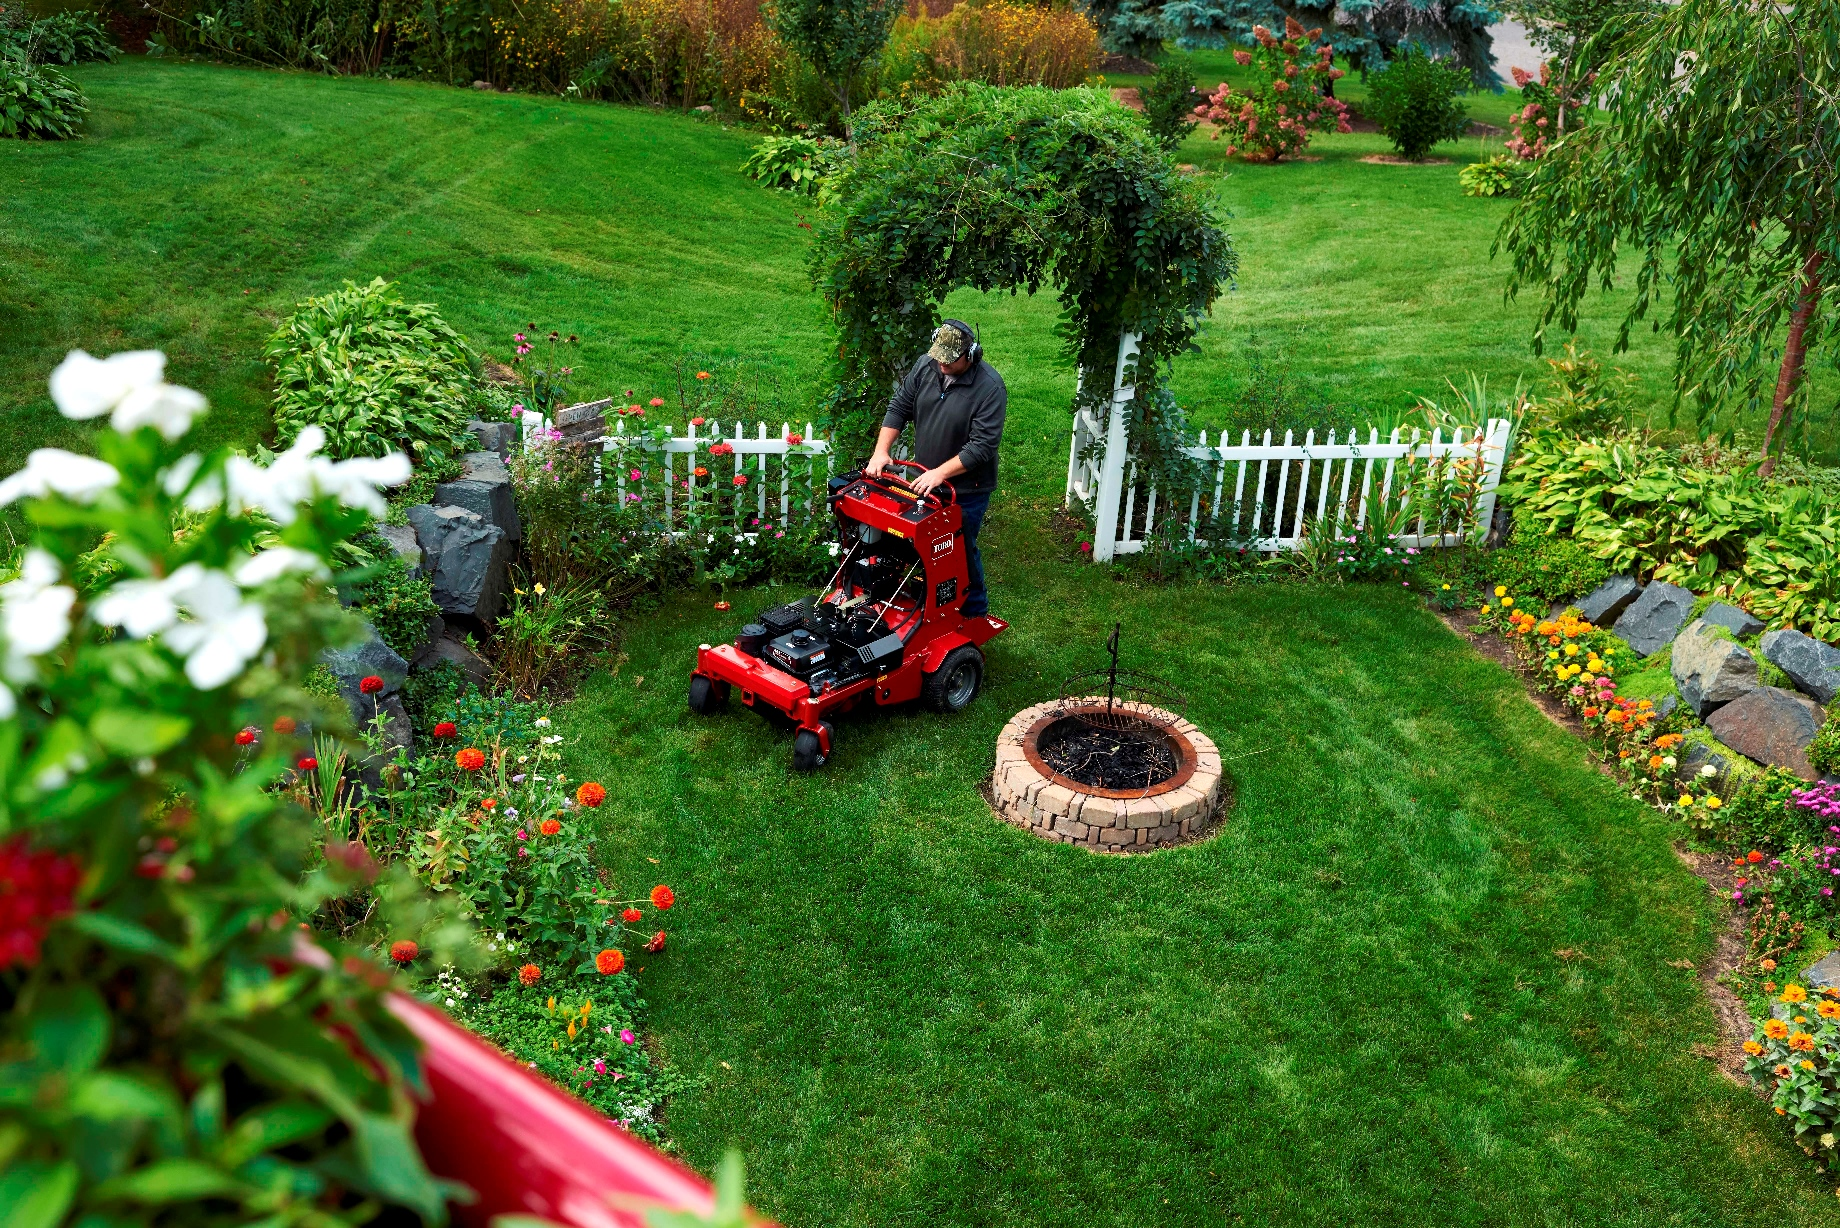 The new 24-Inch Toro Stand-On Aerator